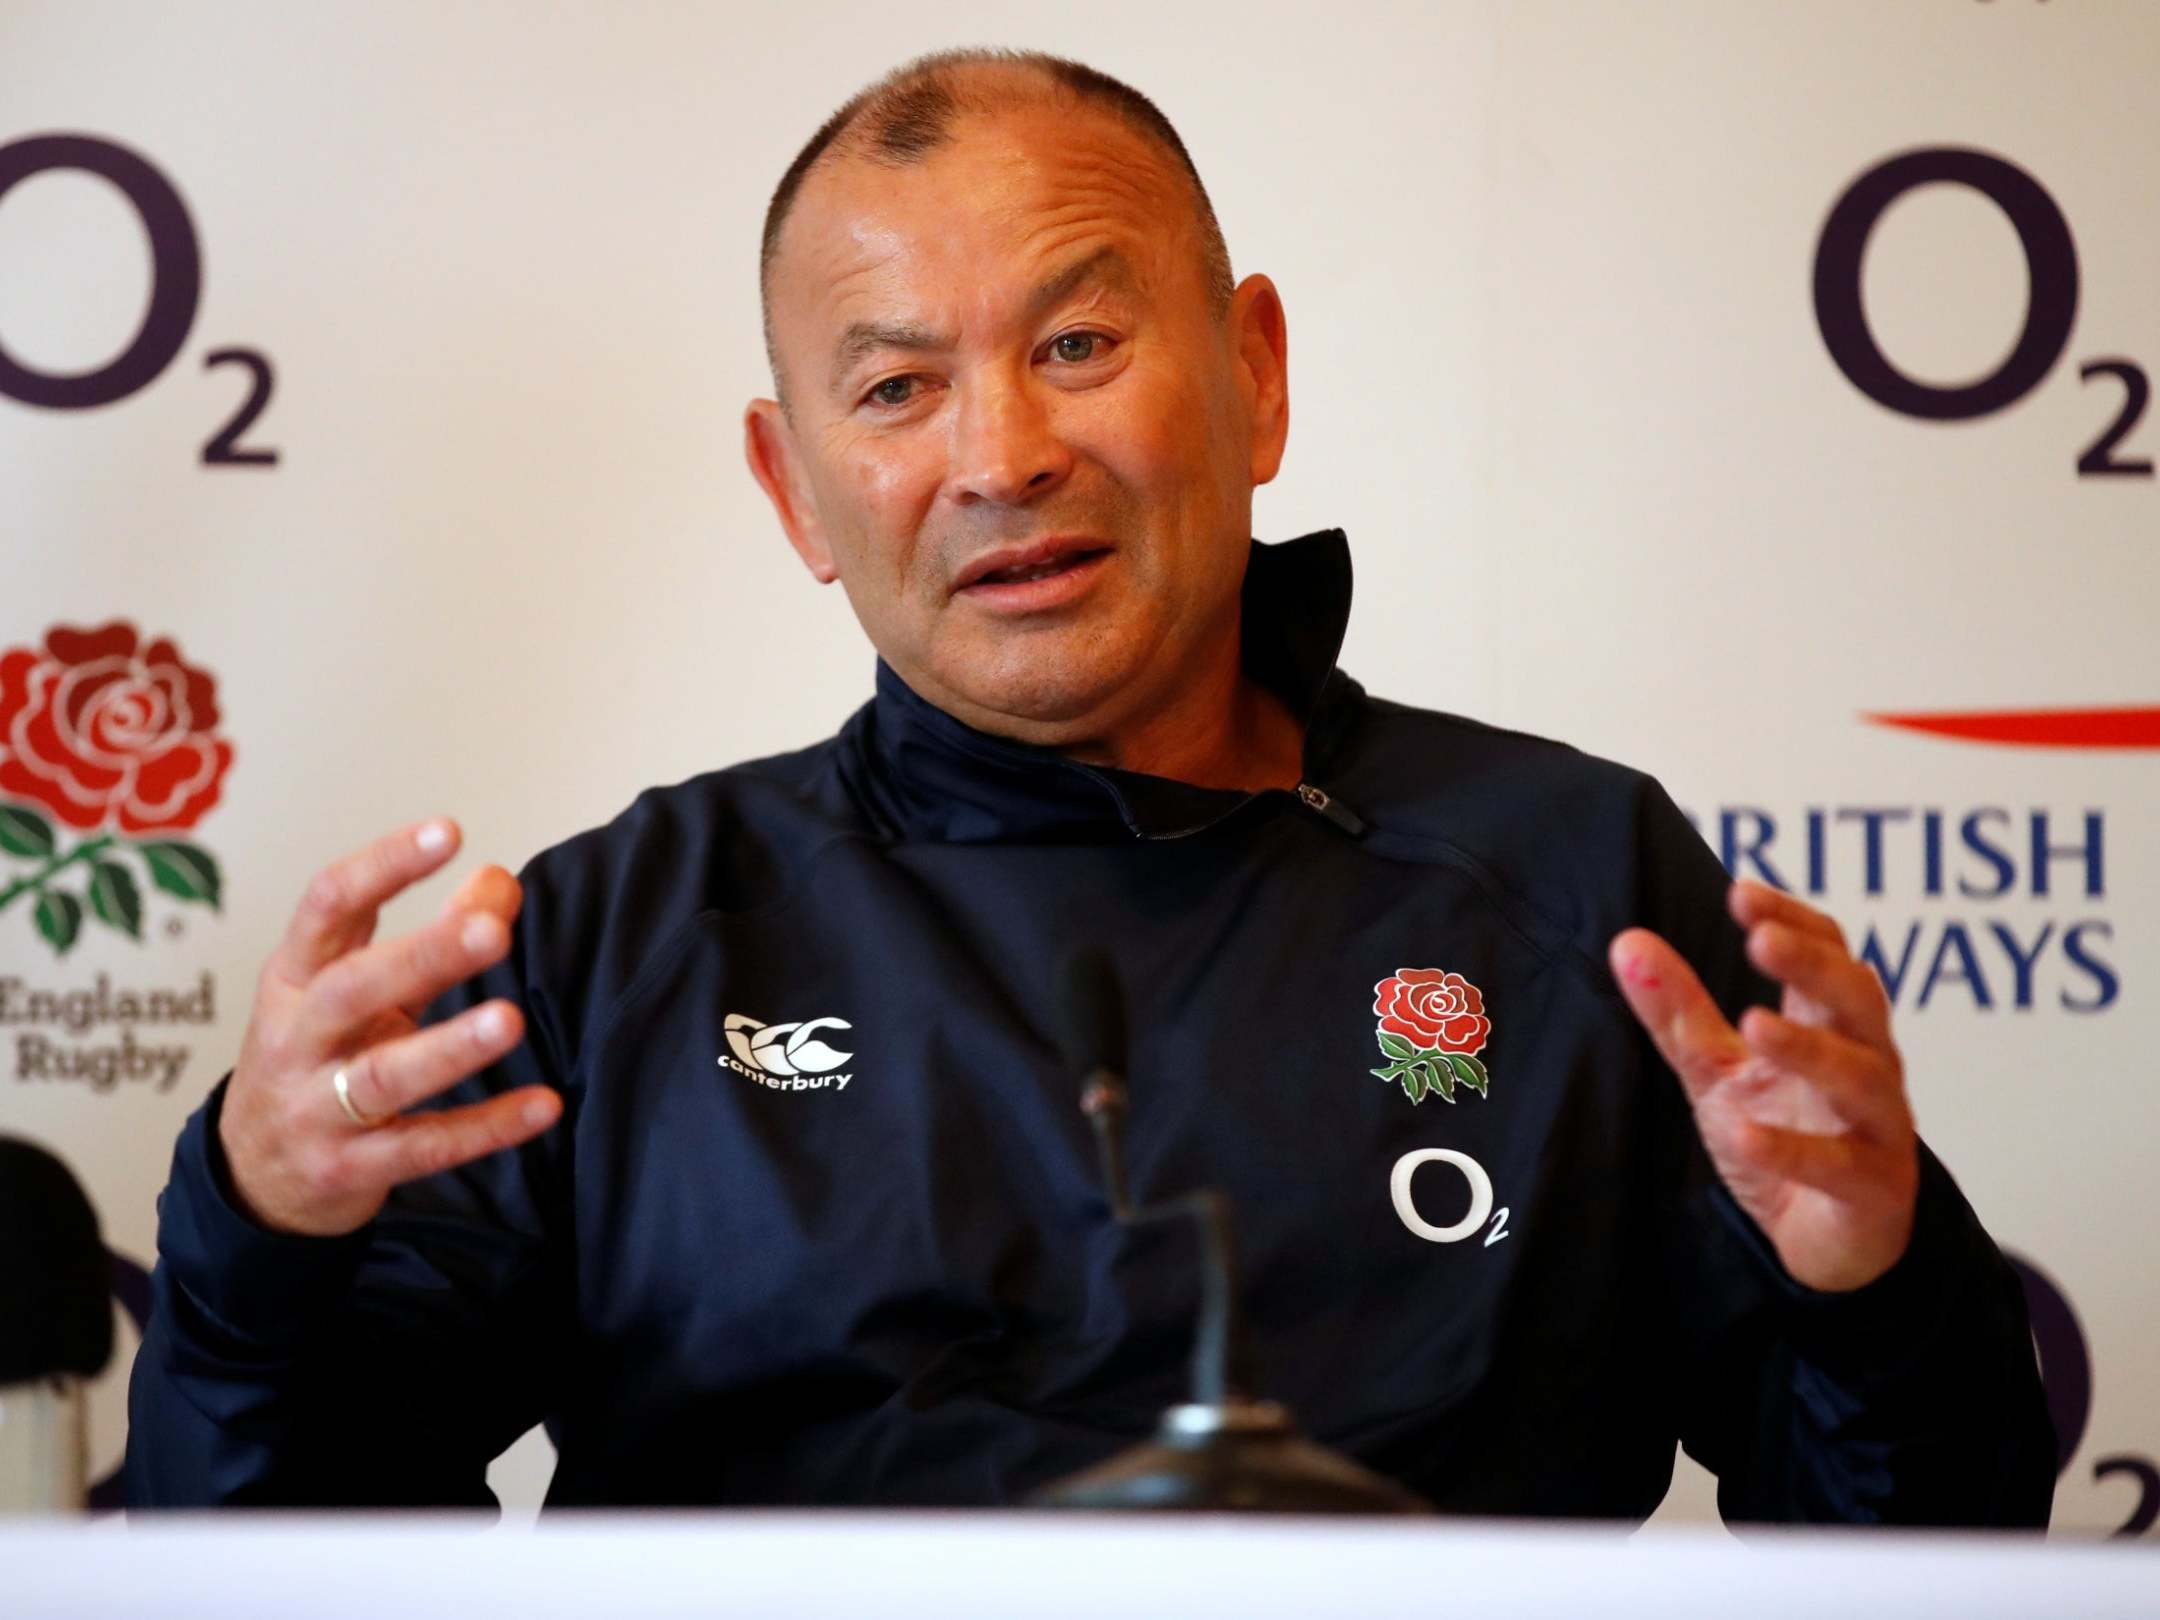 Rugby World Cup 2019: Eddie Jones says Ben Te'o move has no impact on his plans and reacts to James Haskell news